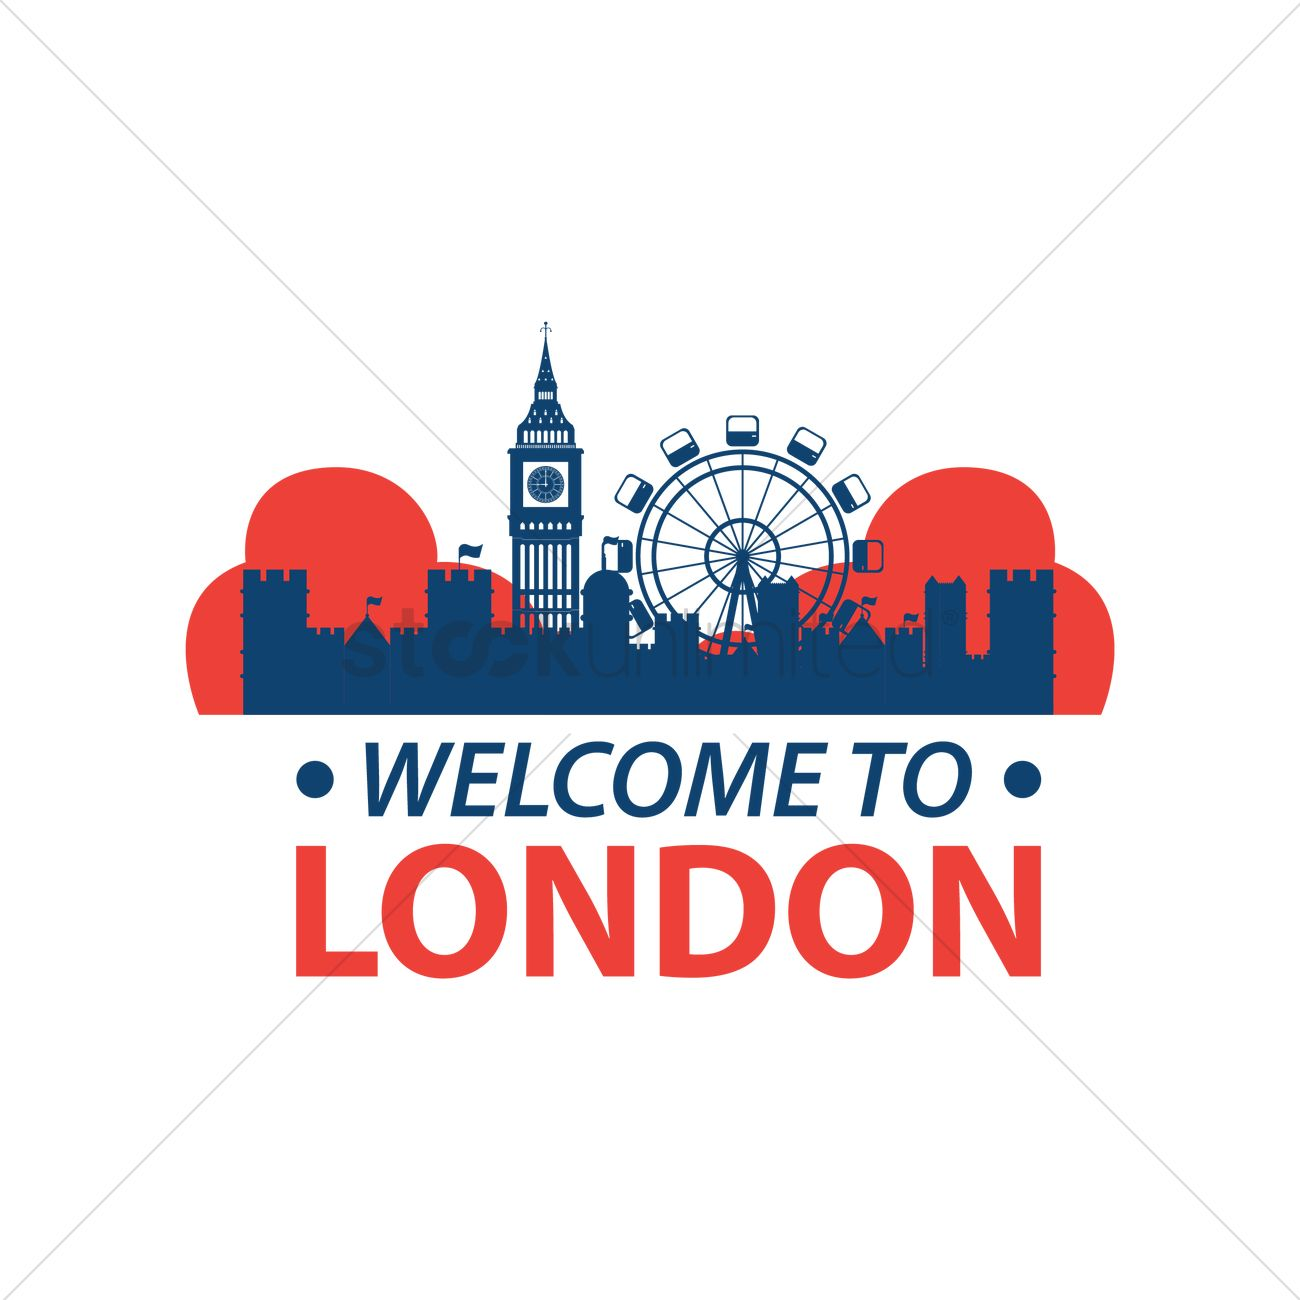 create maps free with Wel E To London 1578197 on Londonchristiantour as well Bamboo furthermore Positioning Map 2 together with Persona Analysis Powerpoint Template as well Watch.